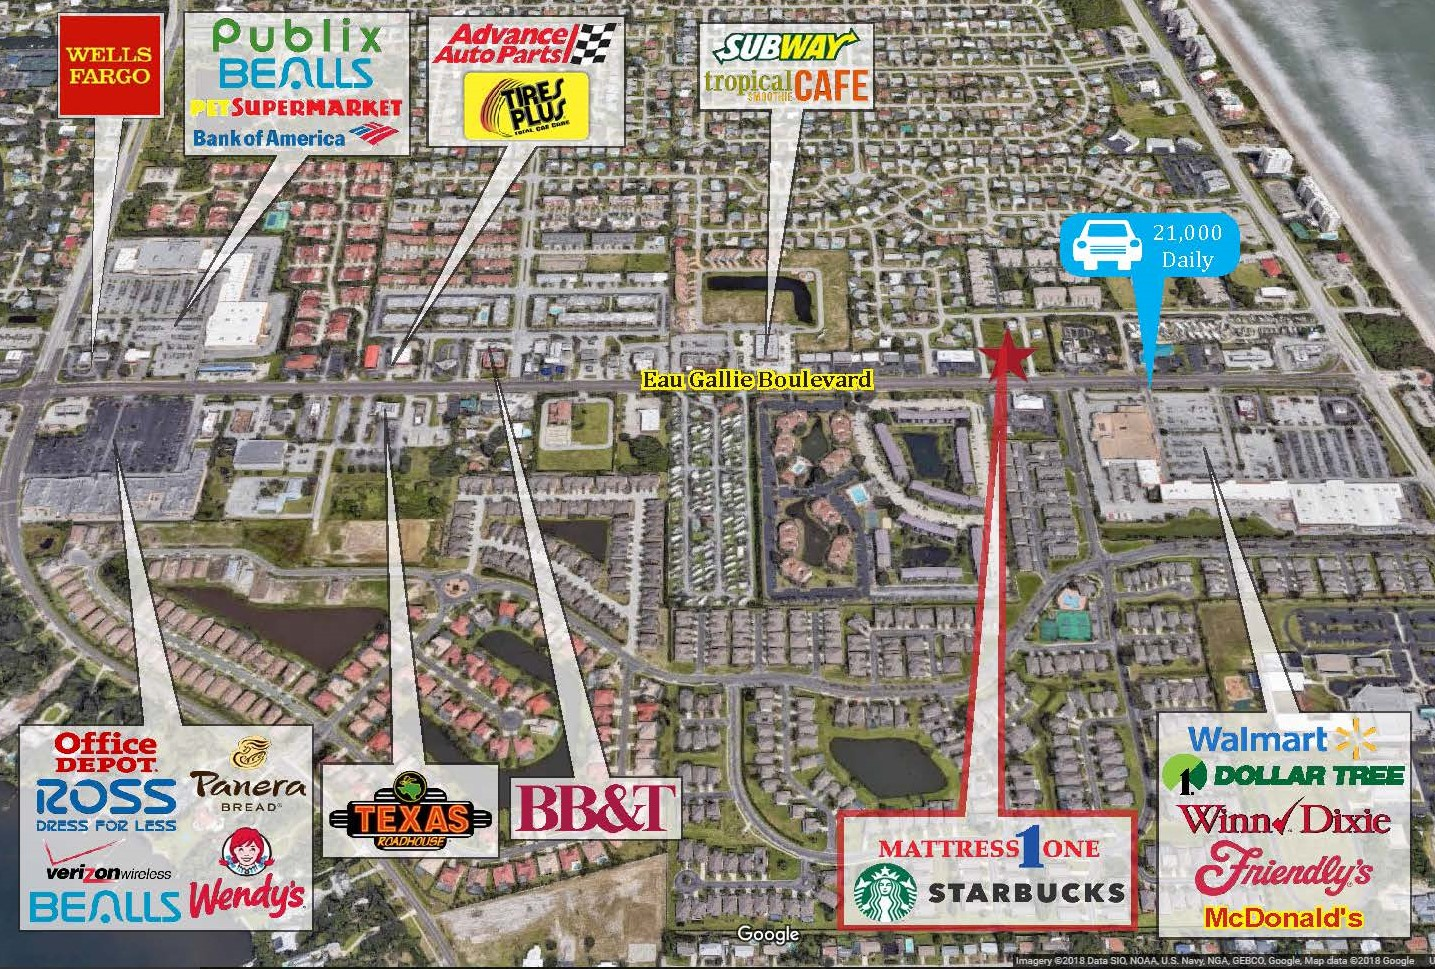 Map Of Melbourne Beach Florida.Starbucks Mattressone Wolfe Retail Group